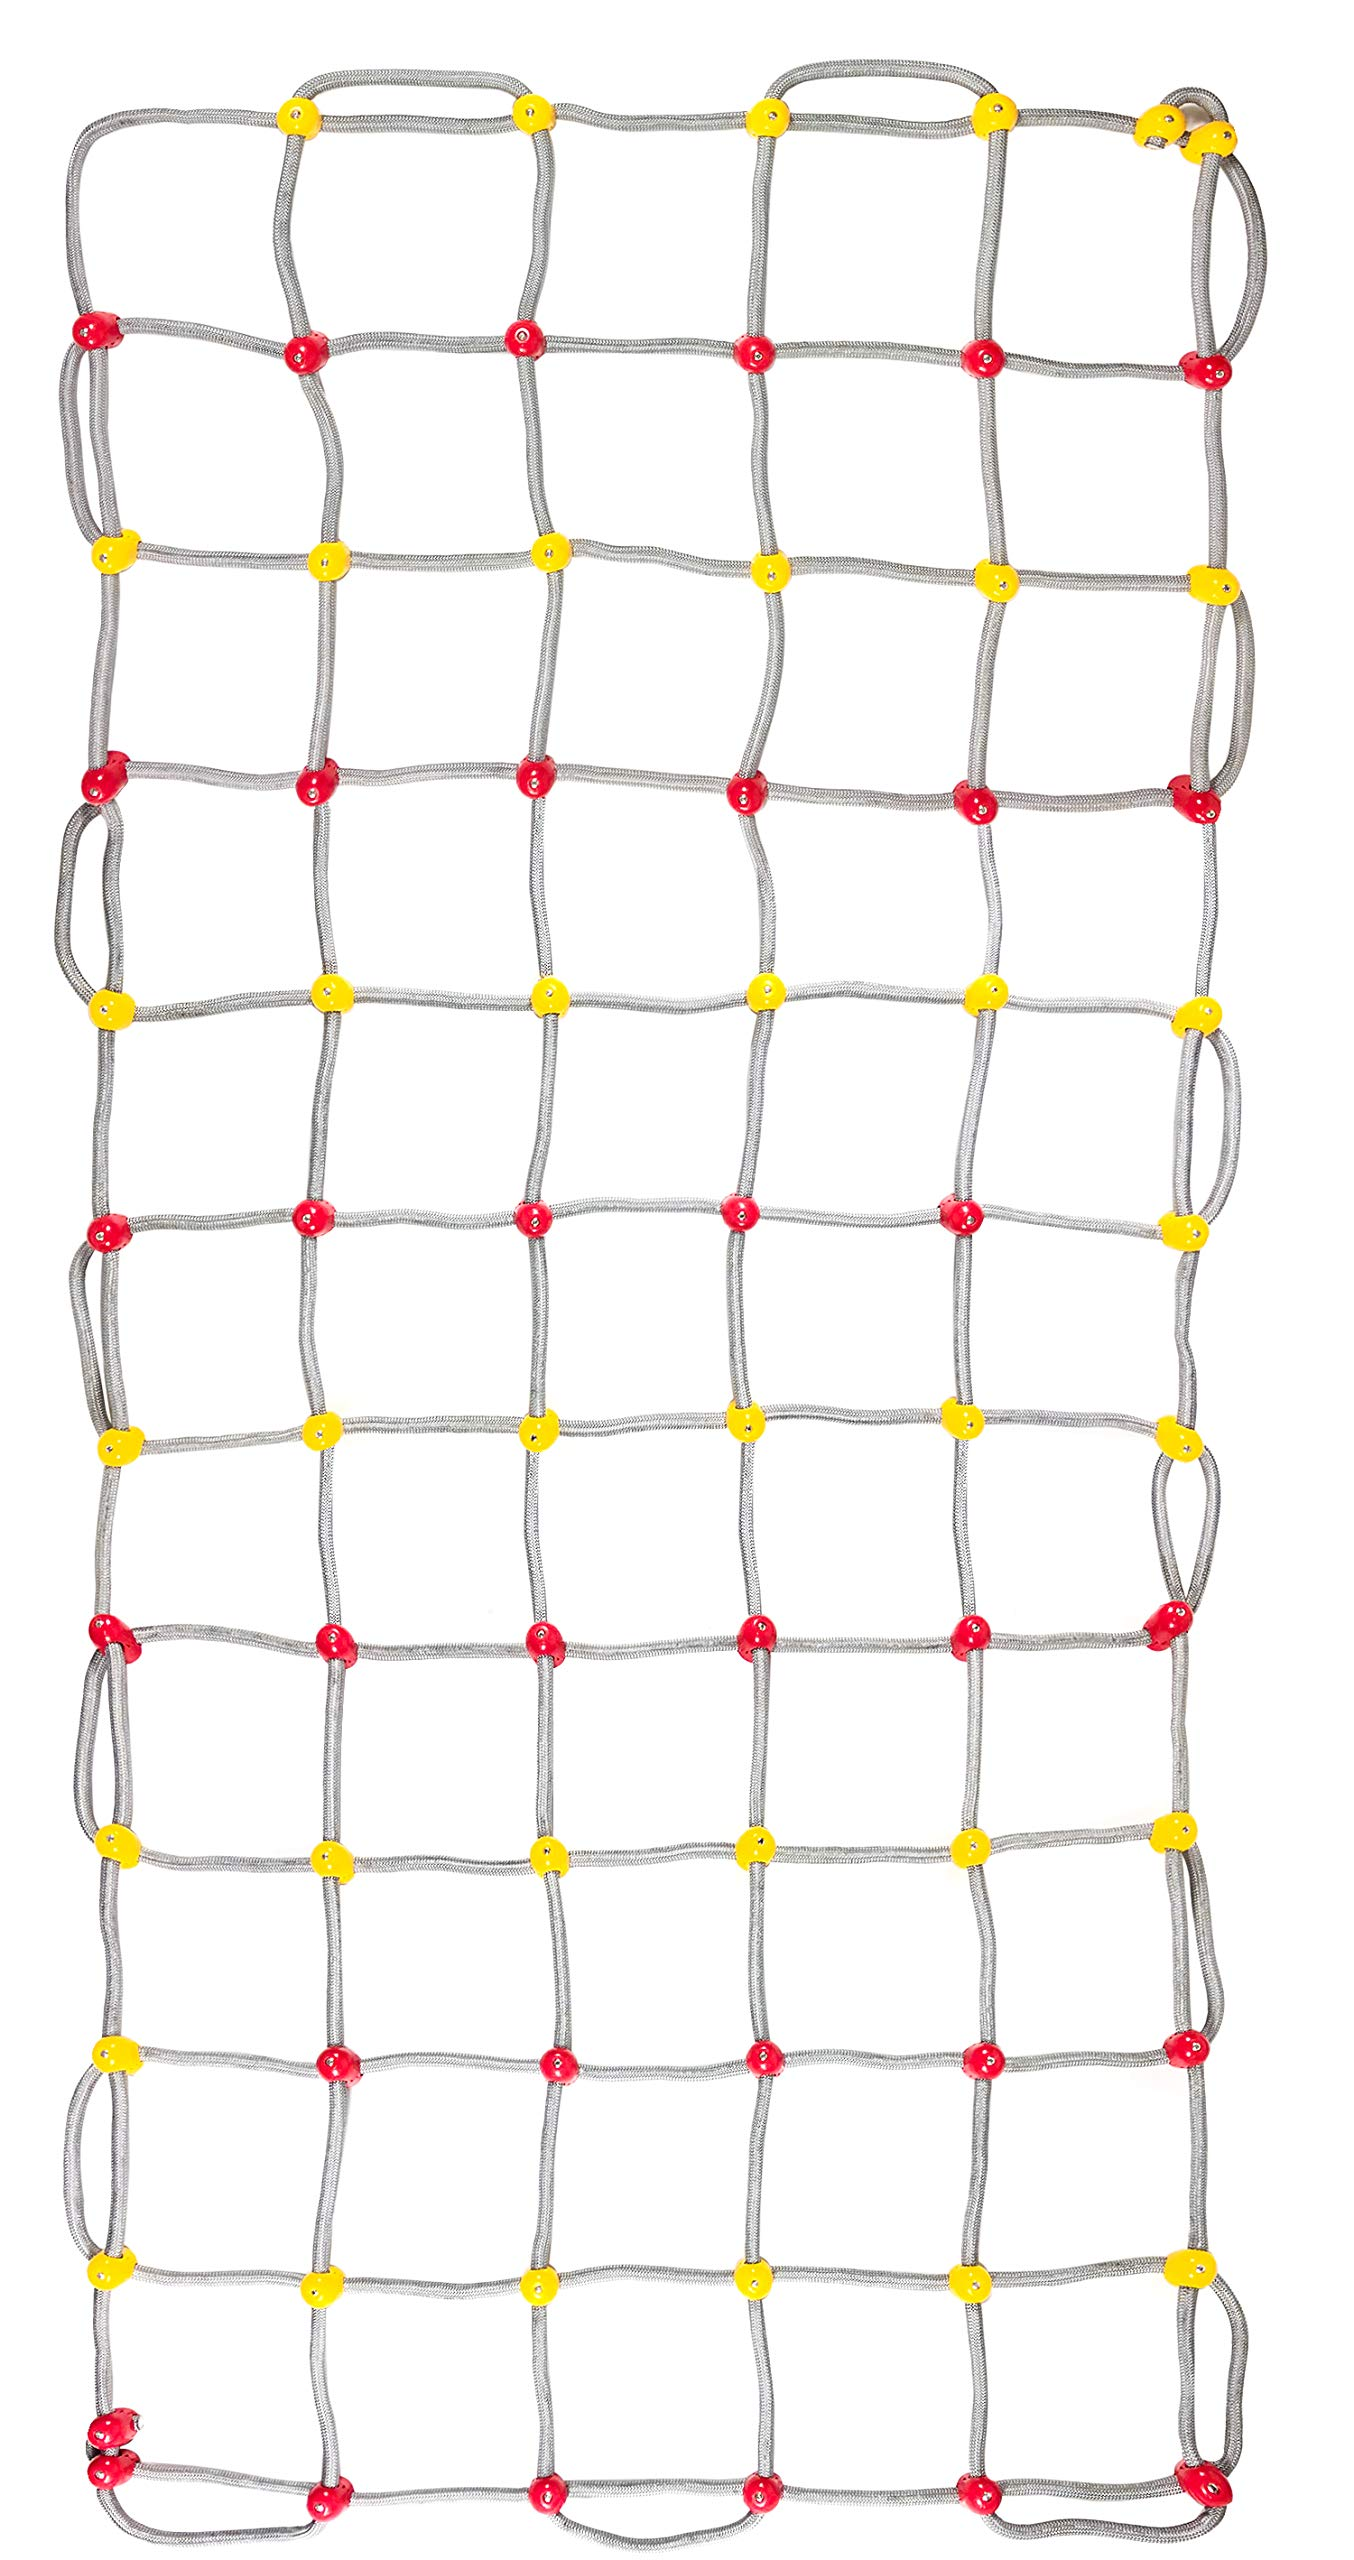 Aoneky 40'' x 86'' Climbing Cargo Net, Rope Climbing Toy for Kids Boys Ages 6 Year Old and up - 15mm Cord by Aoneky